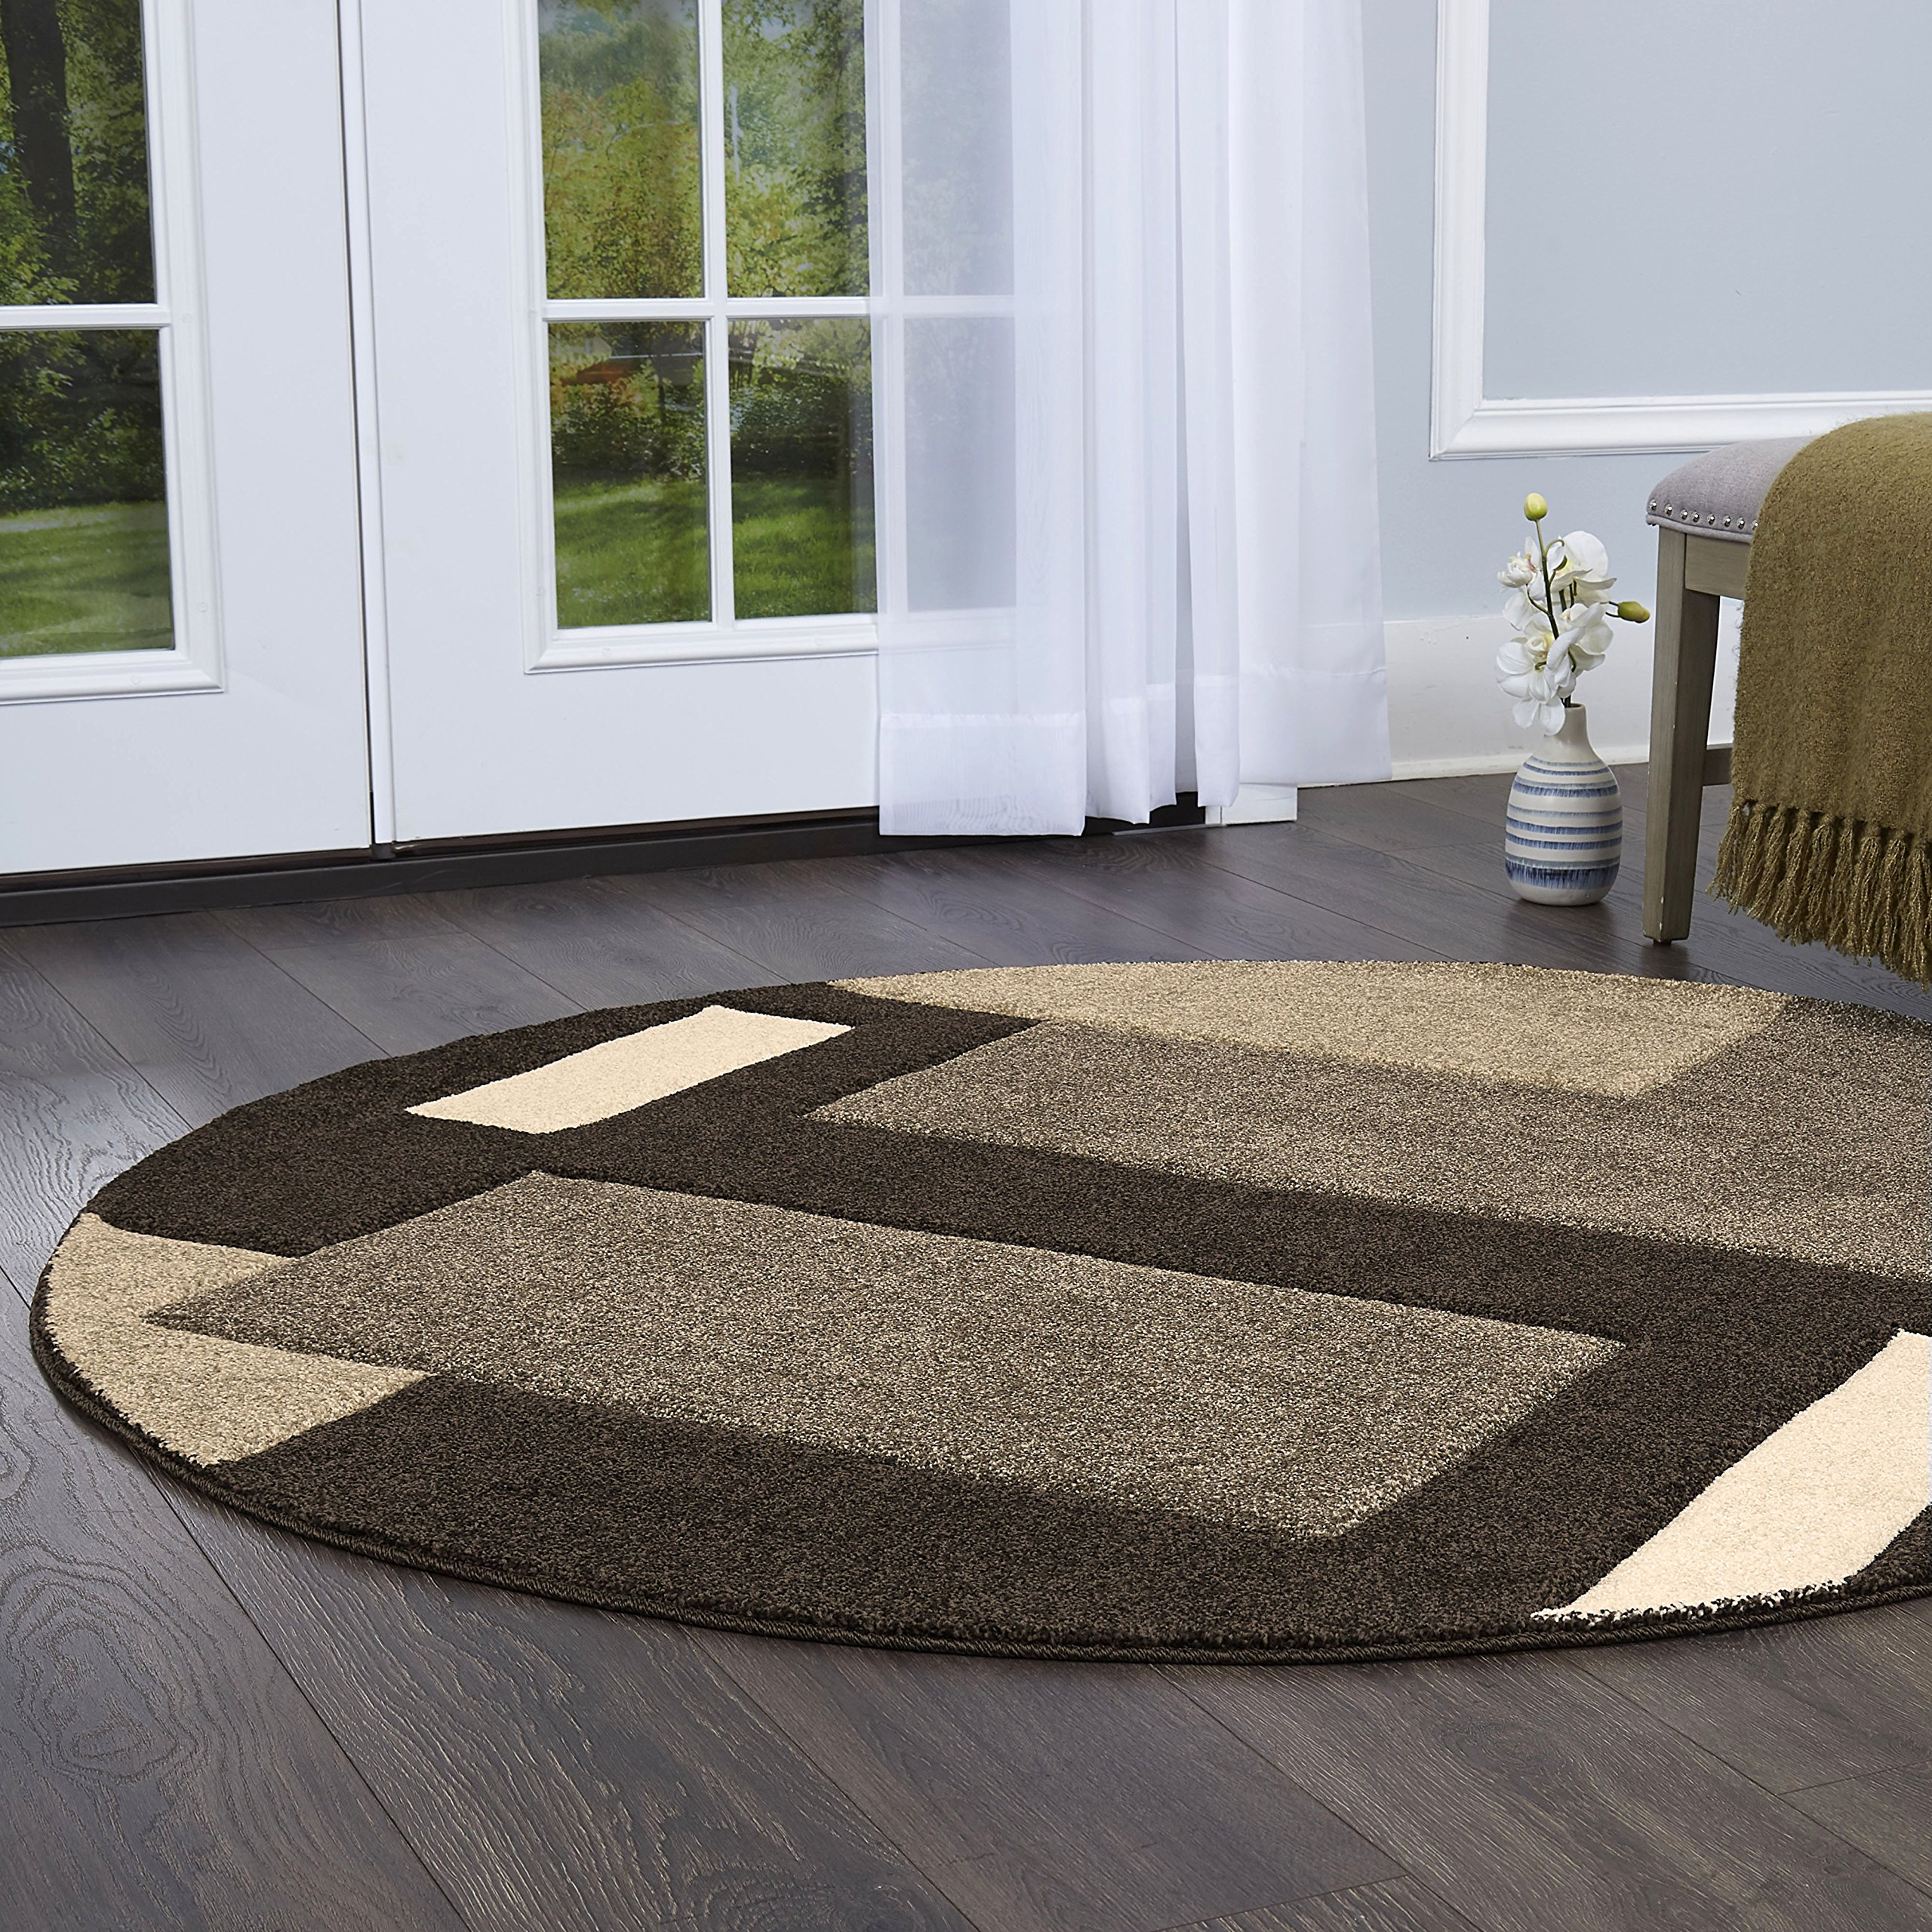 Home Dynamix Sumatra Tarragon Area Rug | Contemporary Round Dining Room Rug | Modern Geometric Design | Soft and Plush Texture | Dark Brown 5'2'' Round